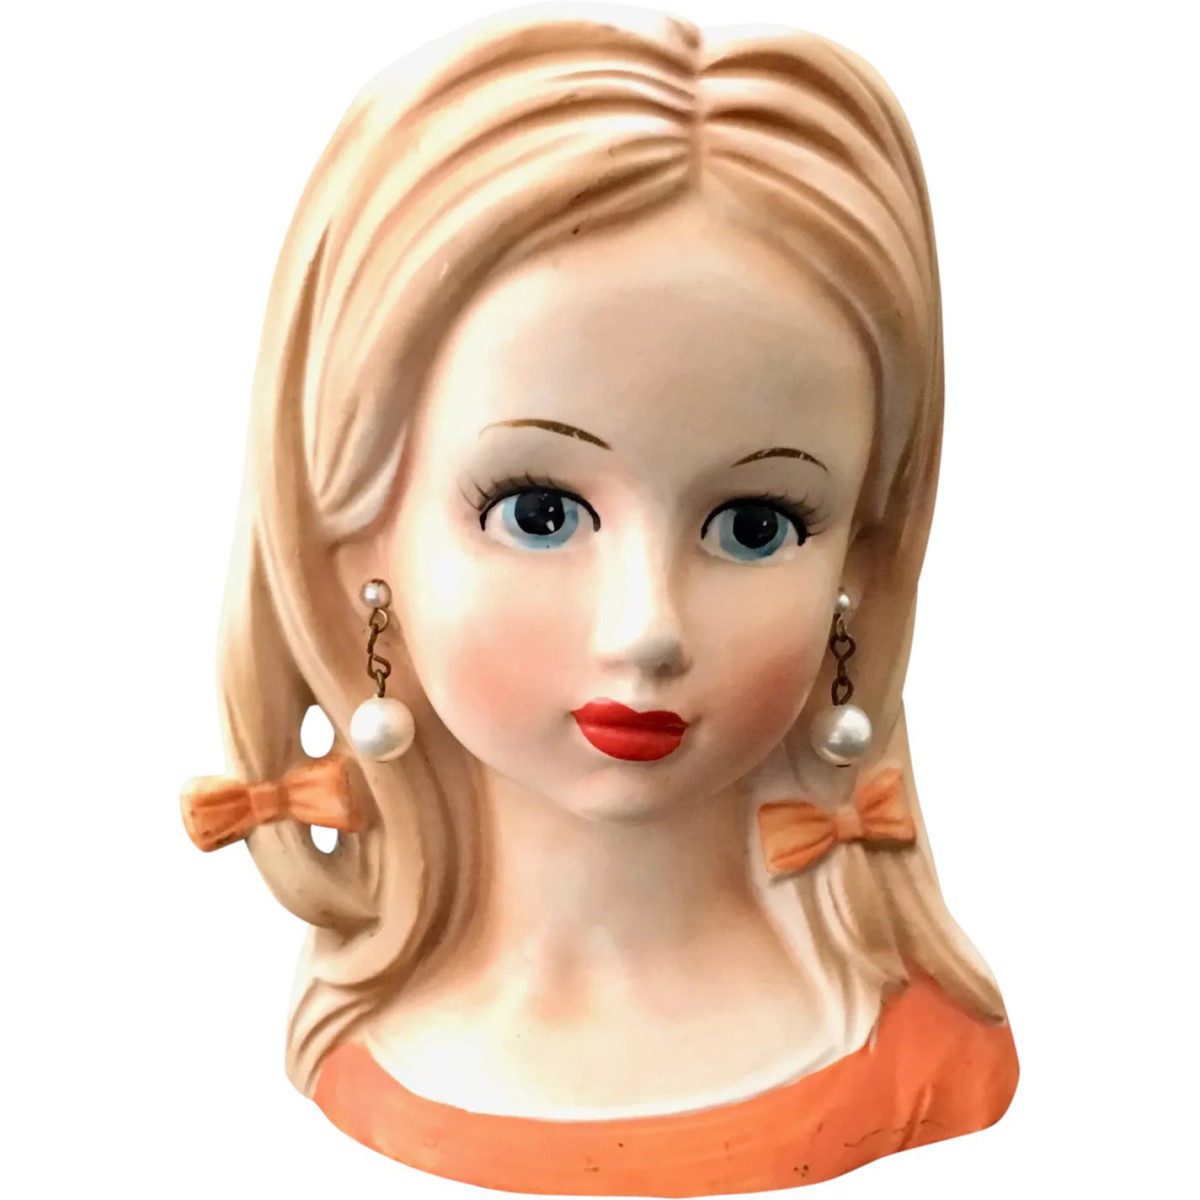 """A hard-to-find teen-age girl head vase by Relpo, with blonde hair, orange dress, pearl earrings and two hair bows, late 1950s-60s, stamped """"A639,"""" 5-1/2"""" h on a 3-3/4"""" x 2-3/4"""" base; $195."""